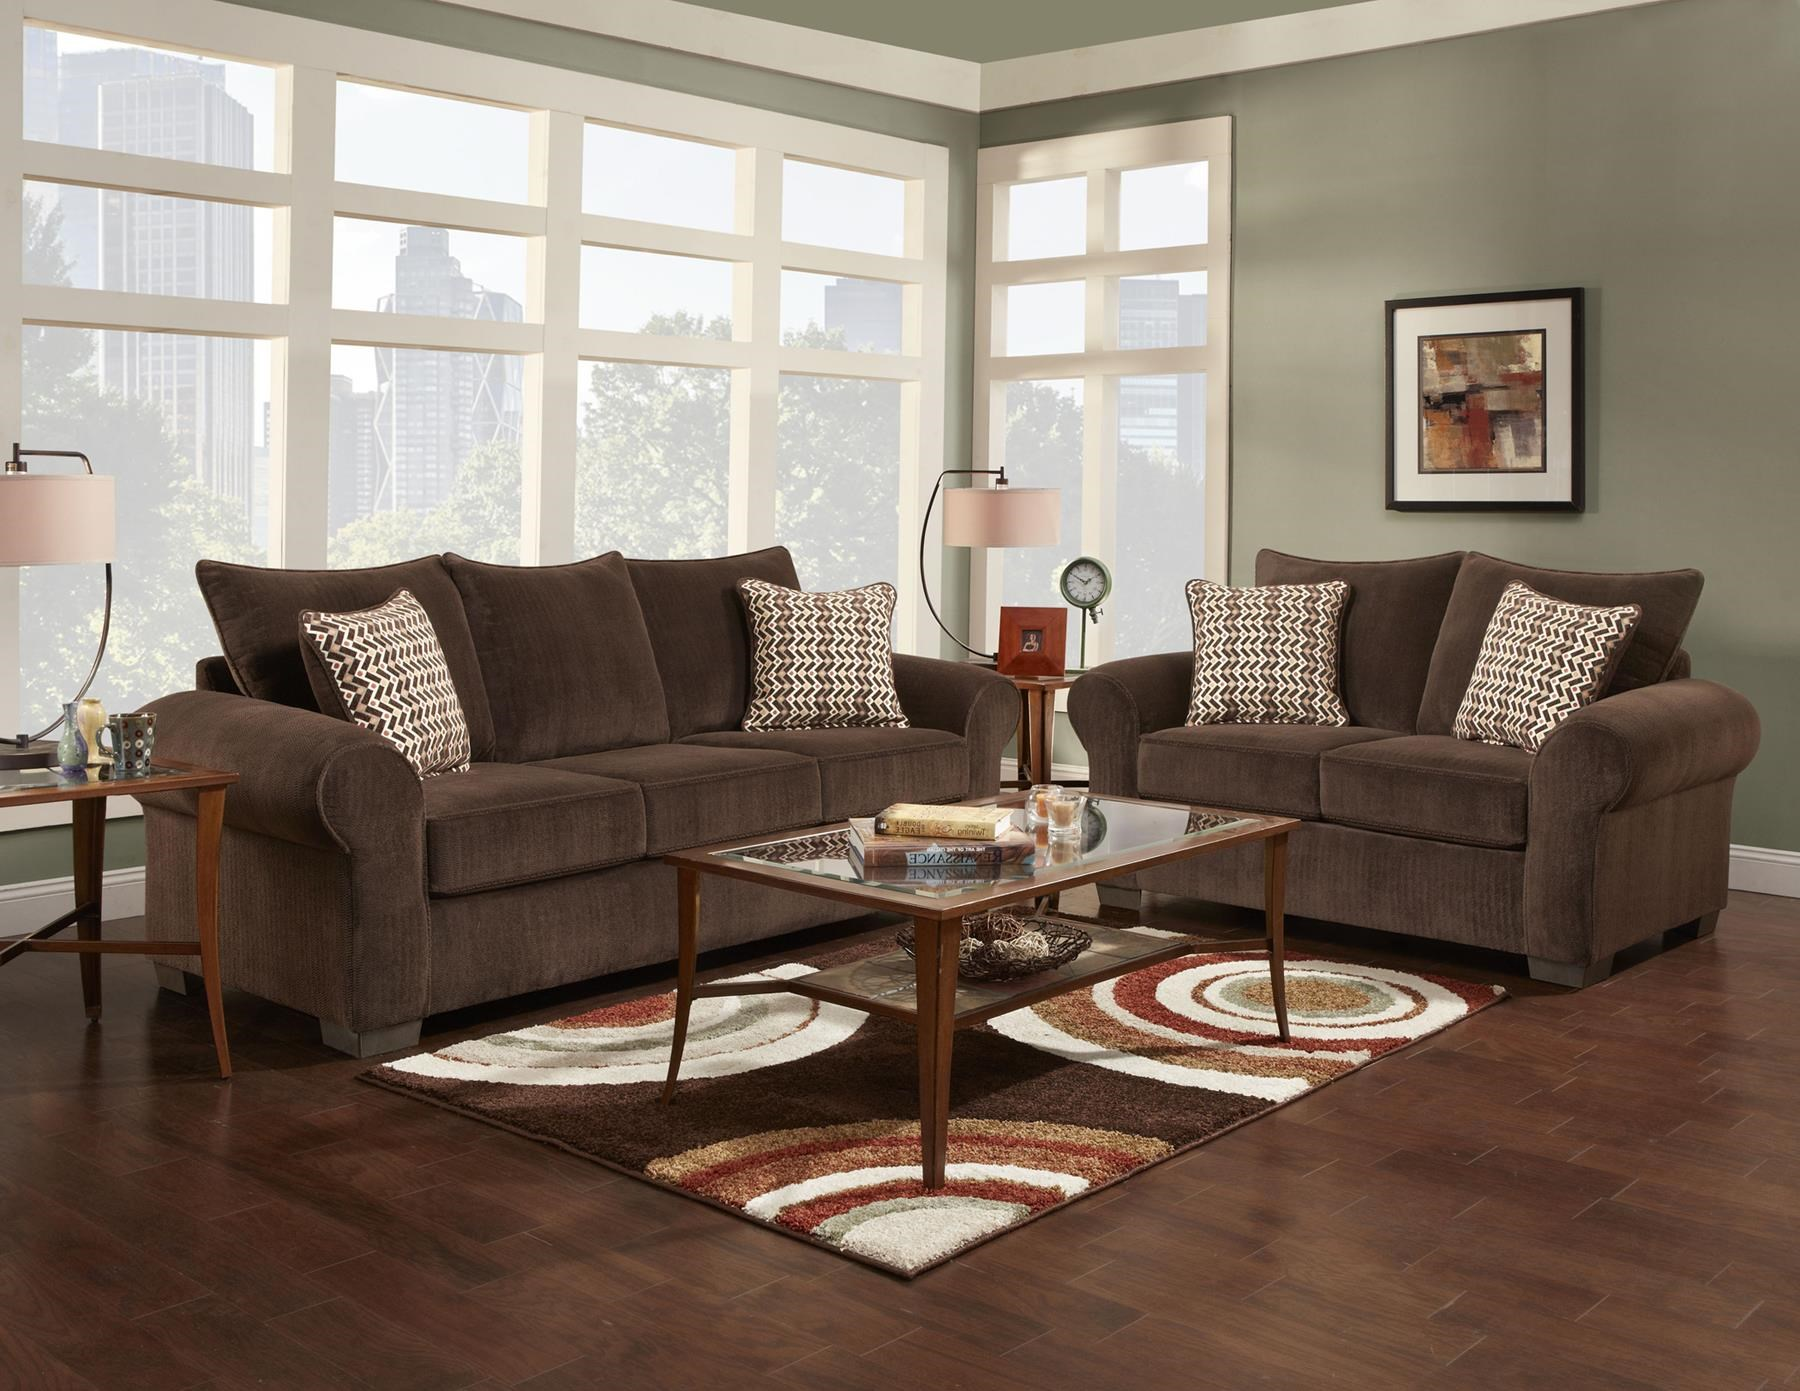 Affordable Furniture 7300 Stationary Living Room Group